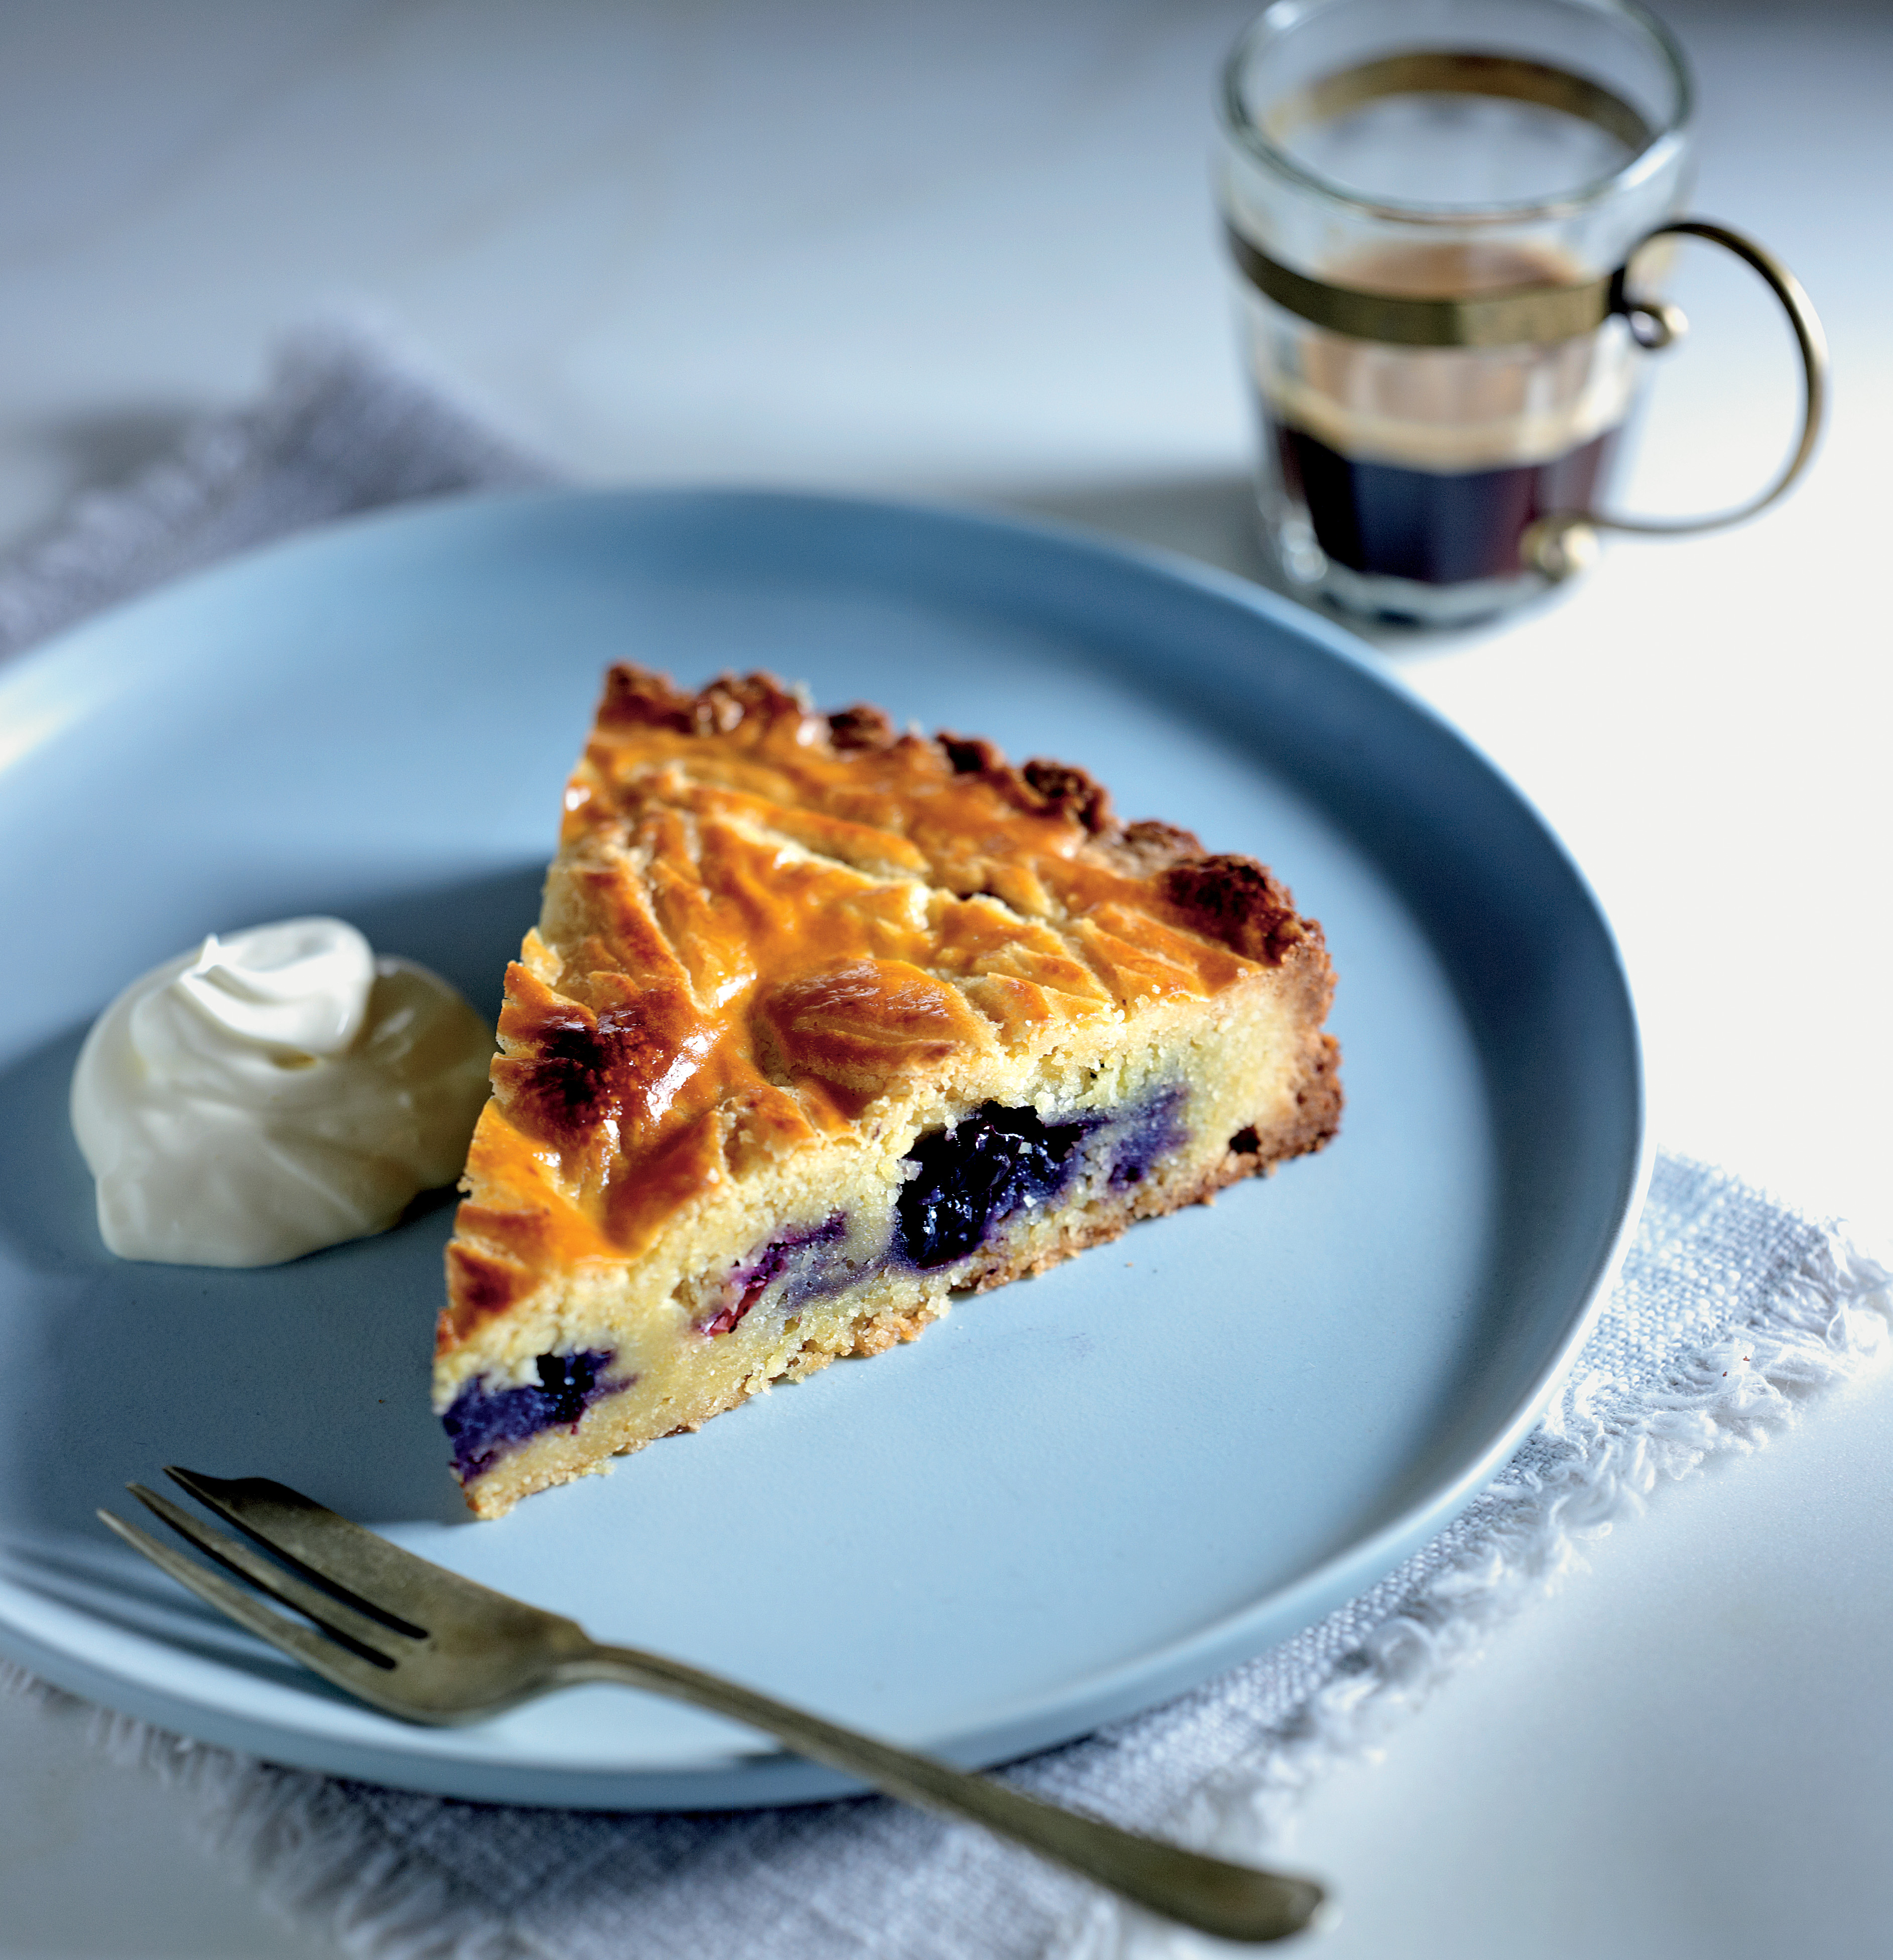 Almond and blueberry galette